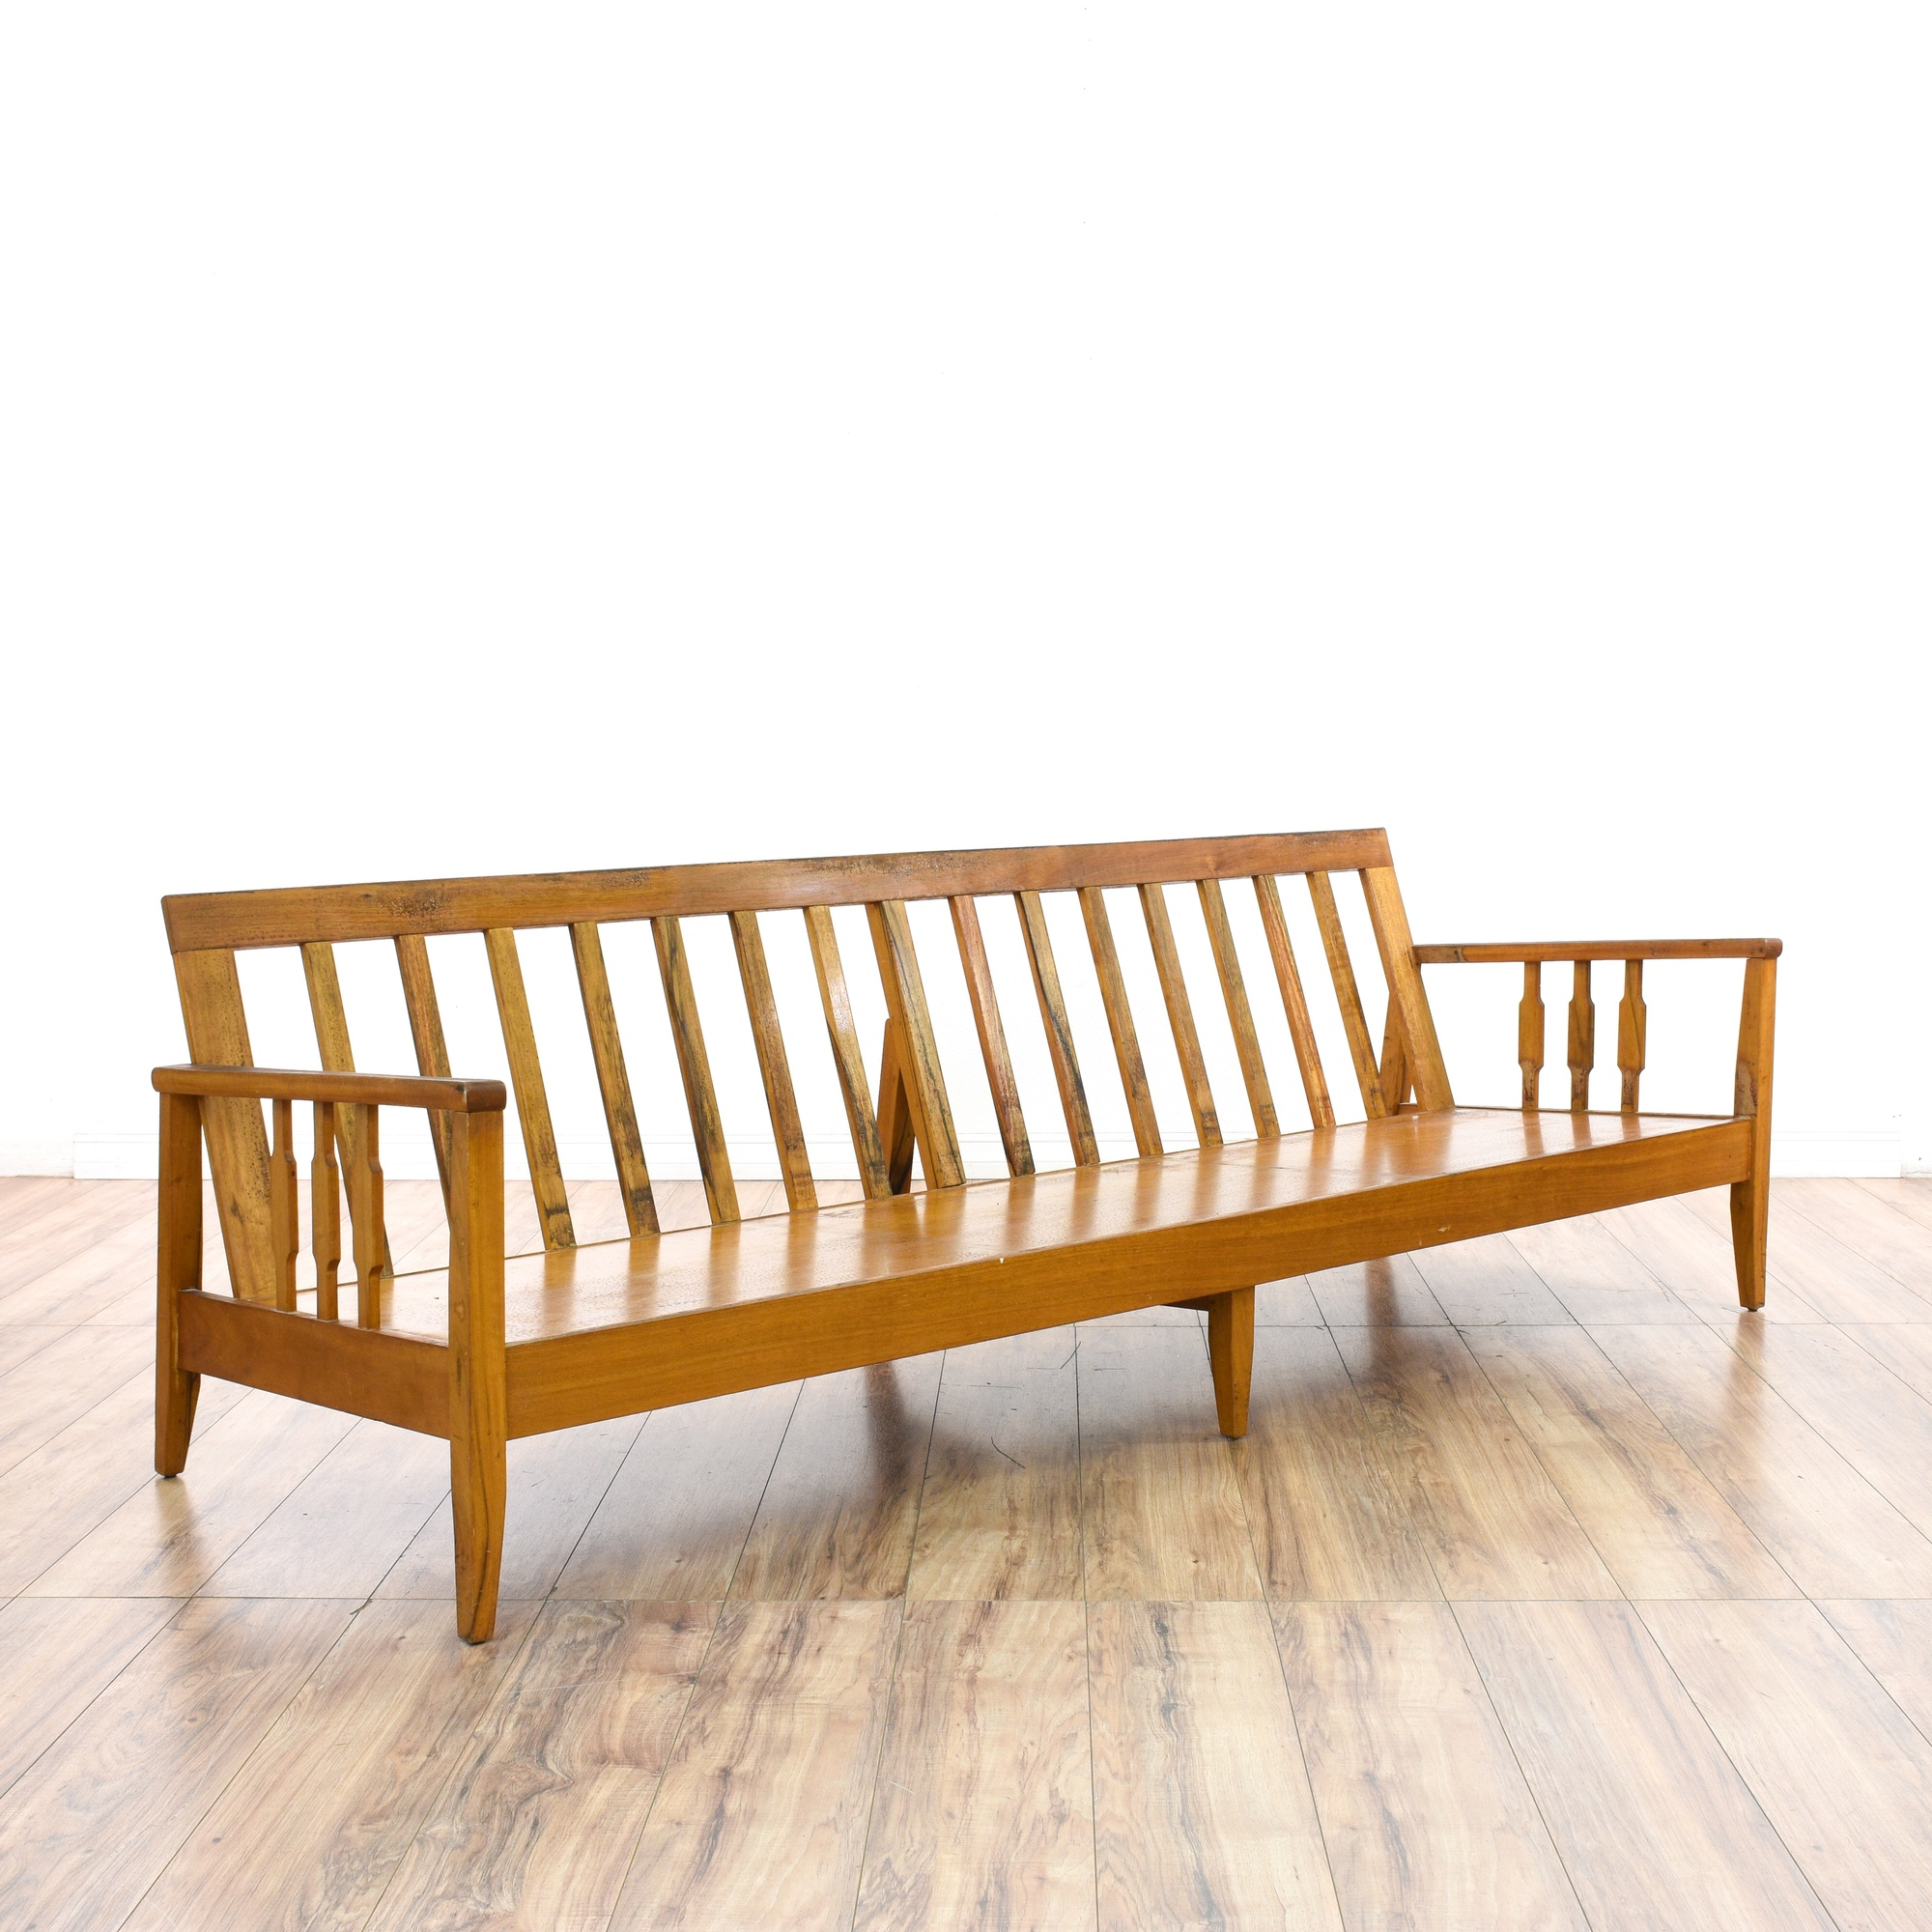 xiaoying furniture ma pin leather wood com carved amazon frame antique loveseat sofas solid